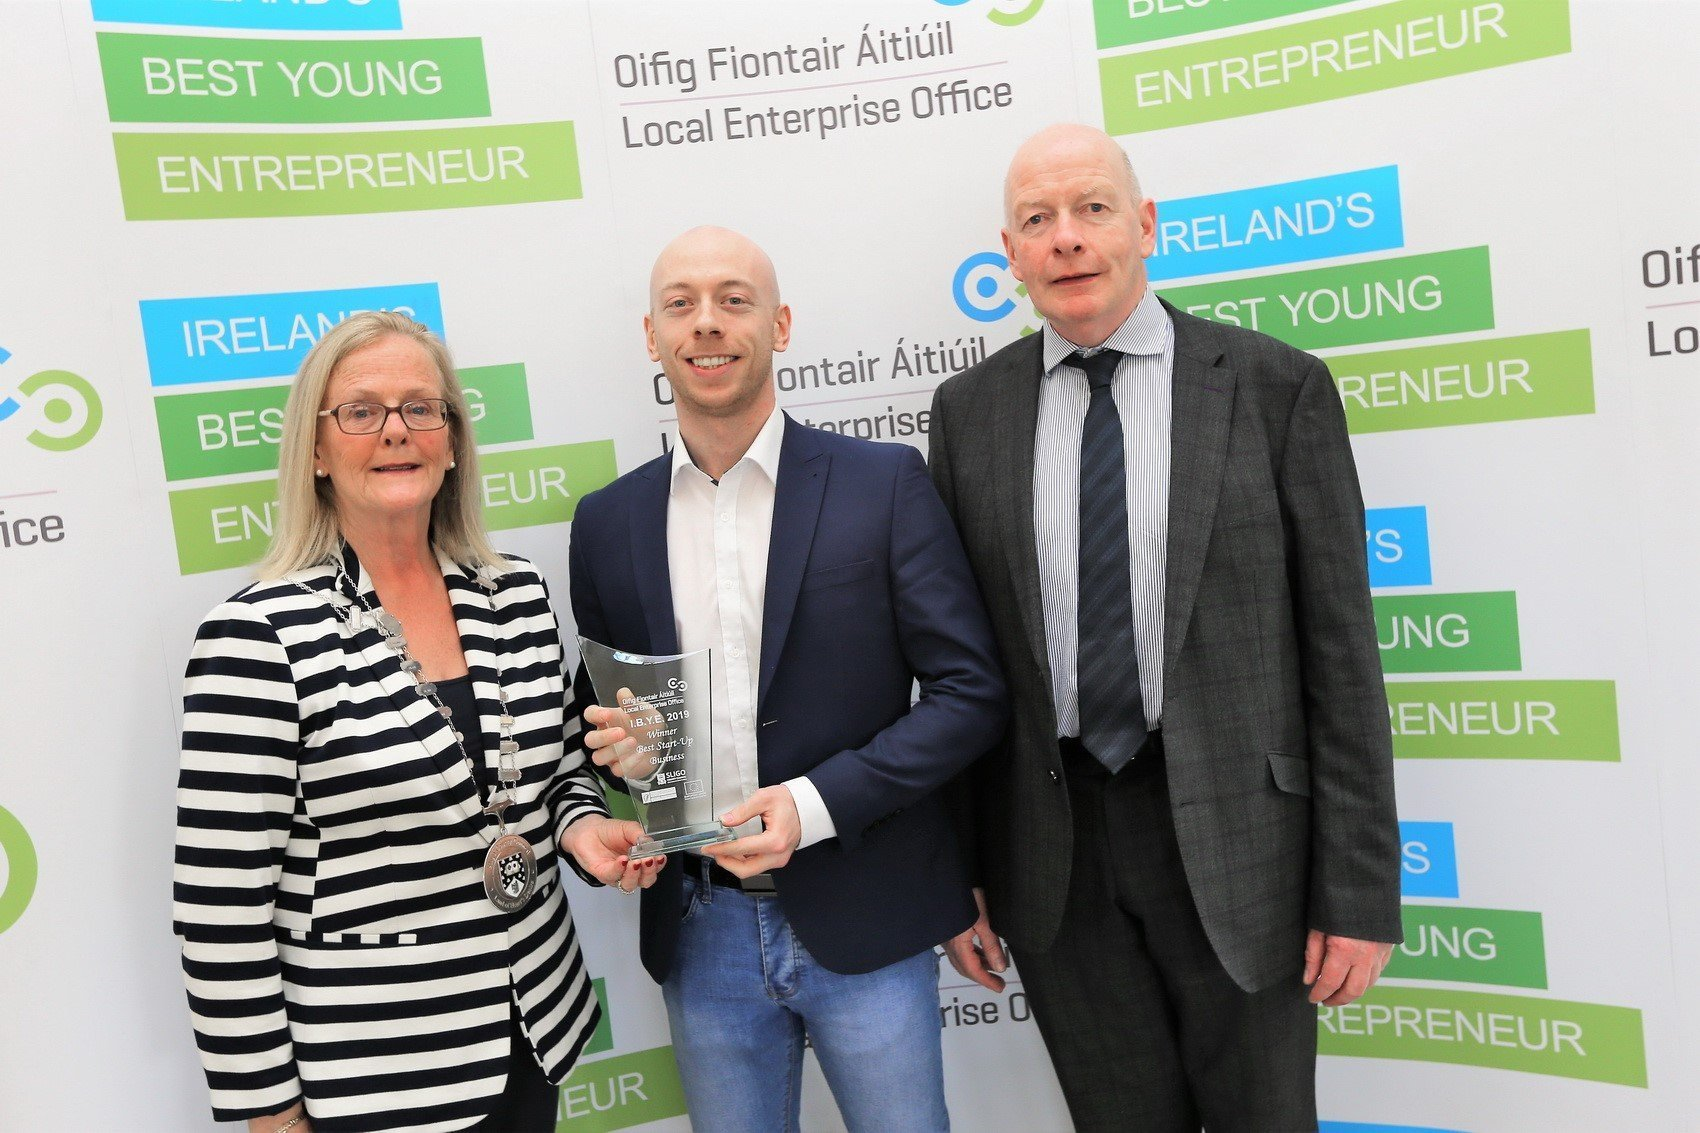 Ireland's Best Young Entrepreneur 2019 Sligo Final